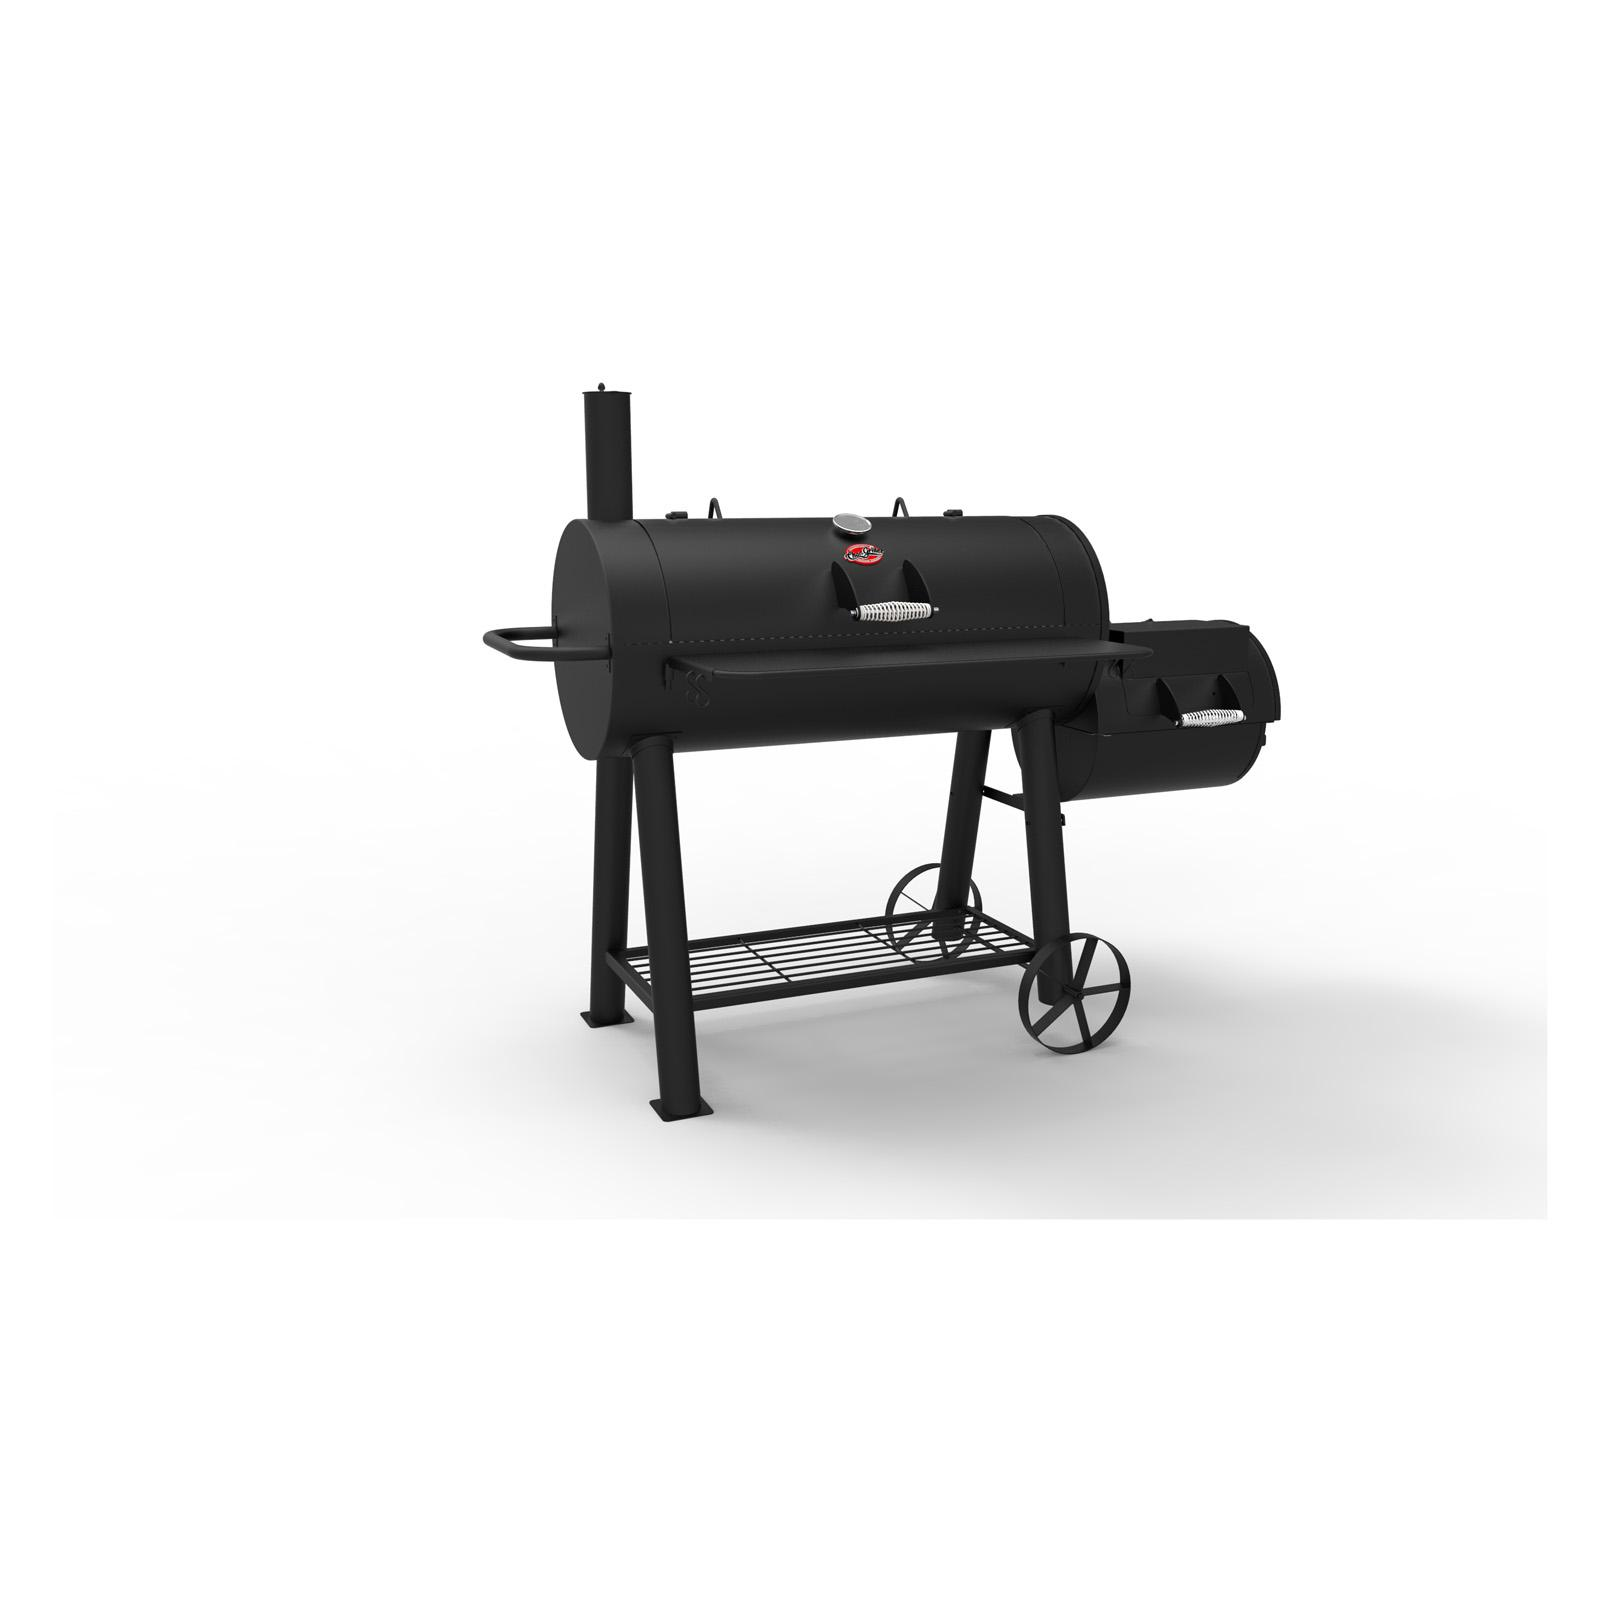 char griller competition pro 8125 charcoal grill shop your way online shopping earn points. Black Bedroom Furniture Sets. Home Design Ideas